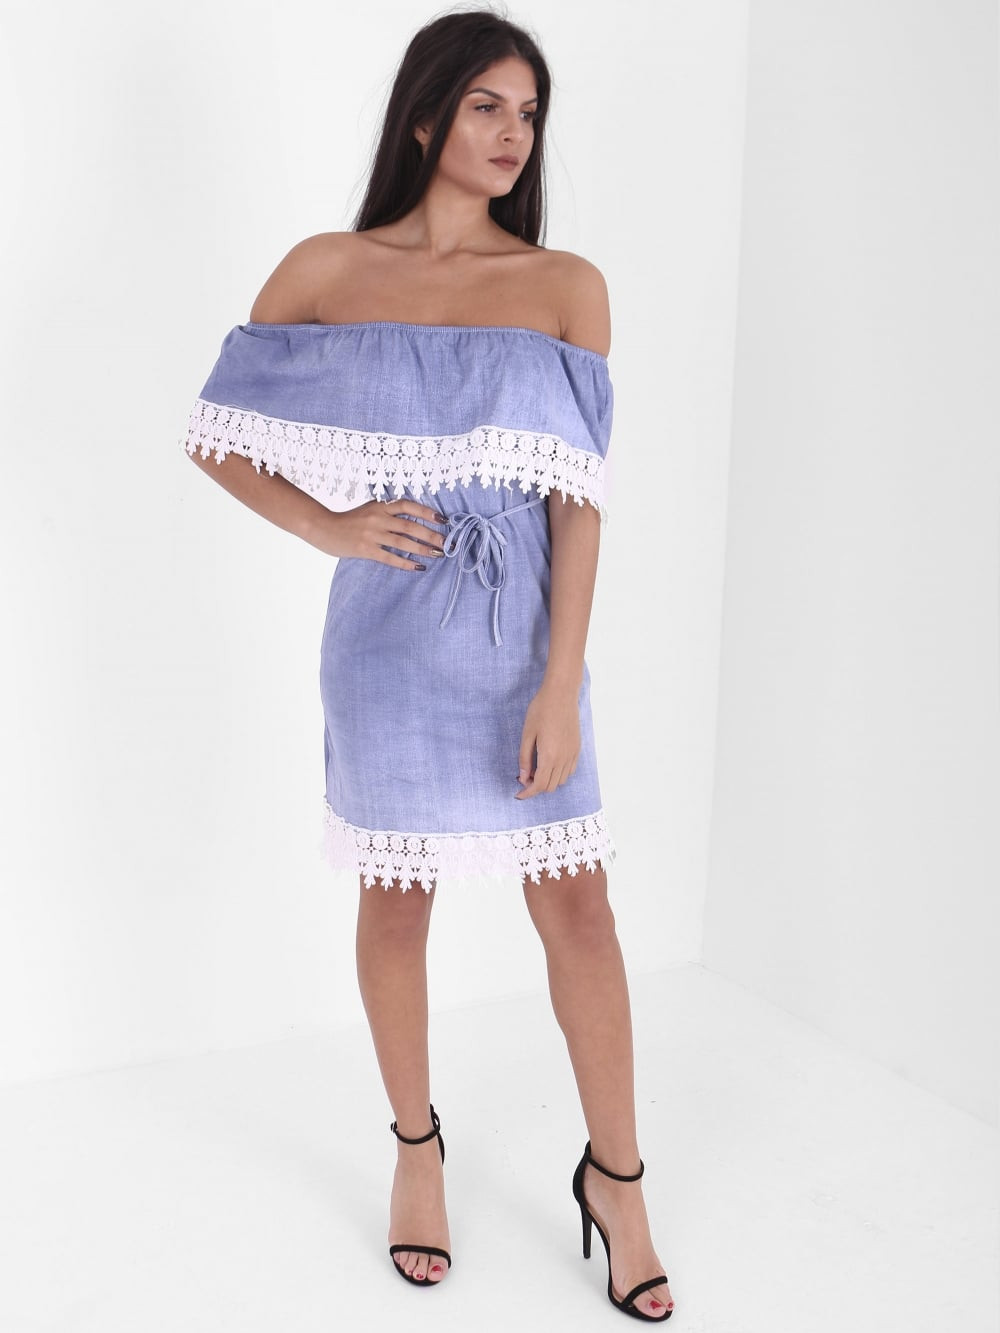 Beautiful Inox Clothing Denim Bardot Crochet Trim Dress New In Crochet Trim Dresses Of Attractive 47 Images Crochet Trim Dresses